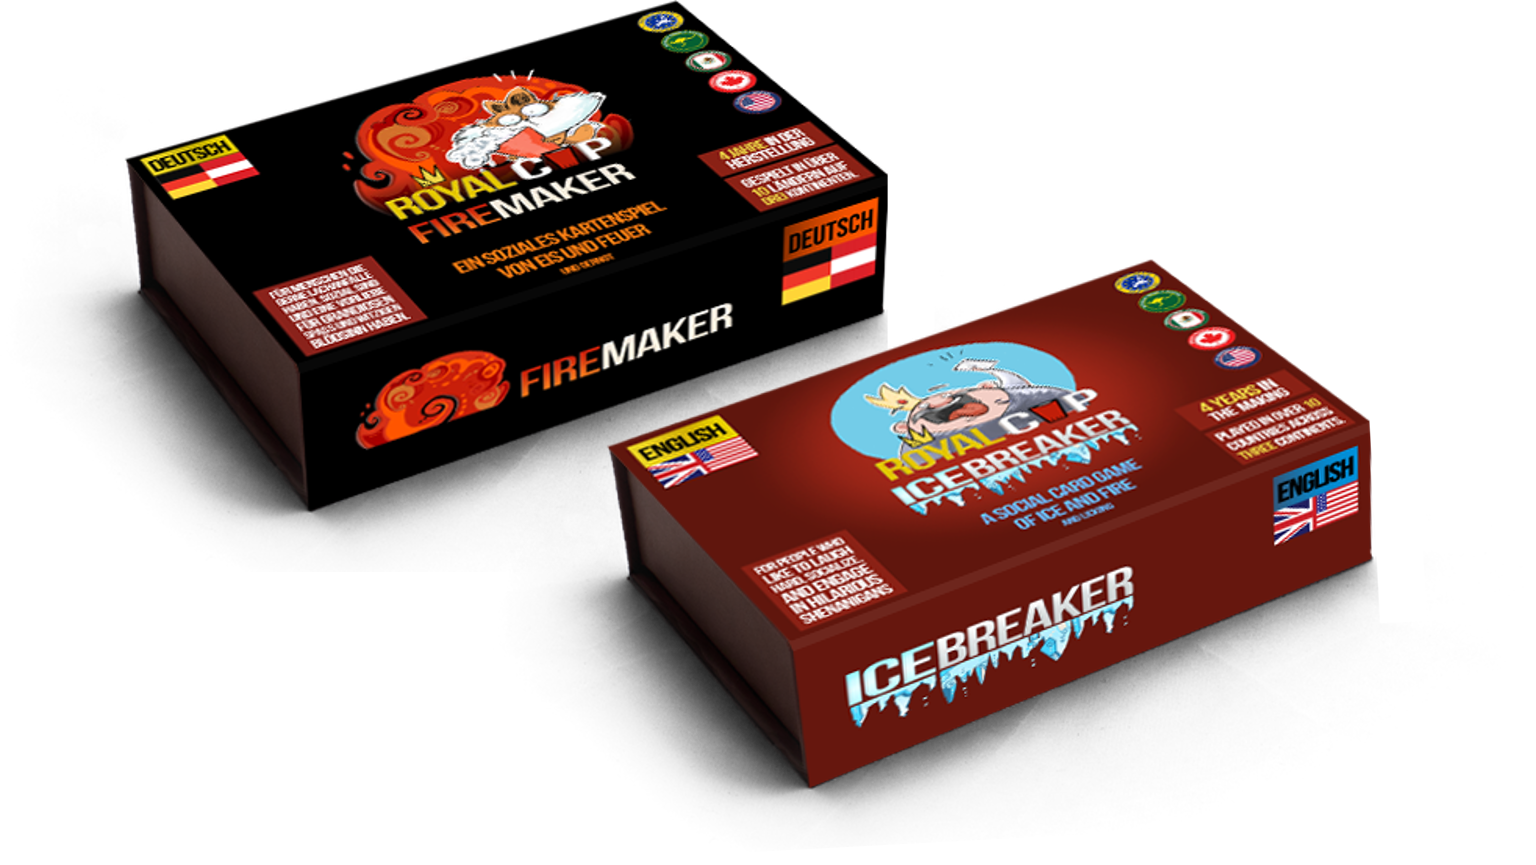 Royal Cup Releases Icebreaker and Firemaker: The Social Card Games for Wallflowers